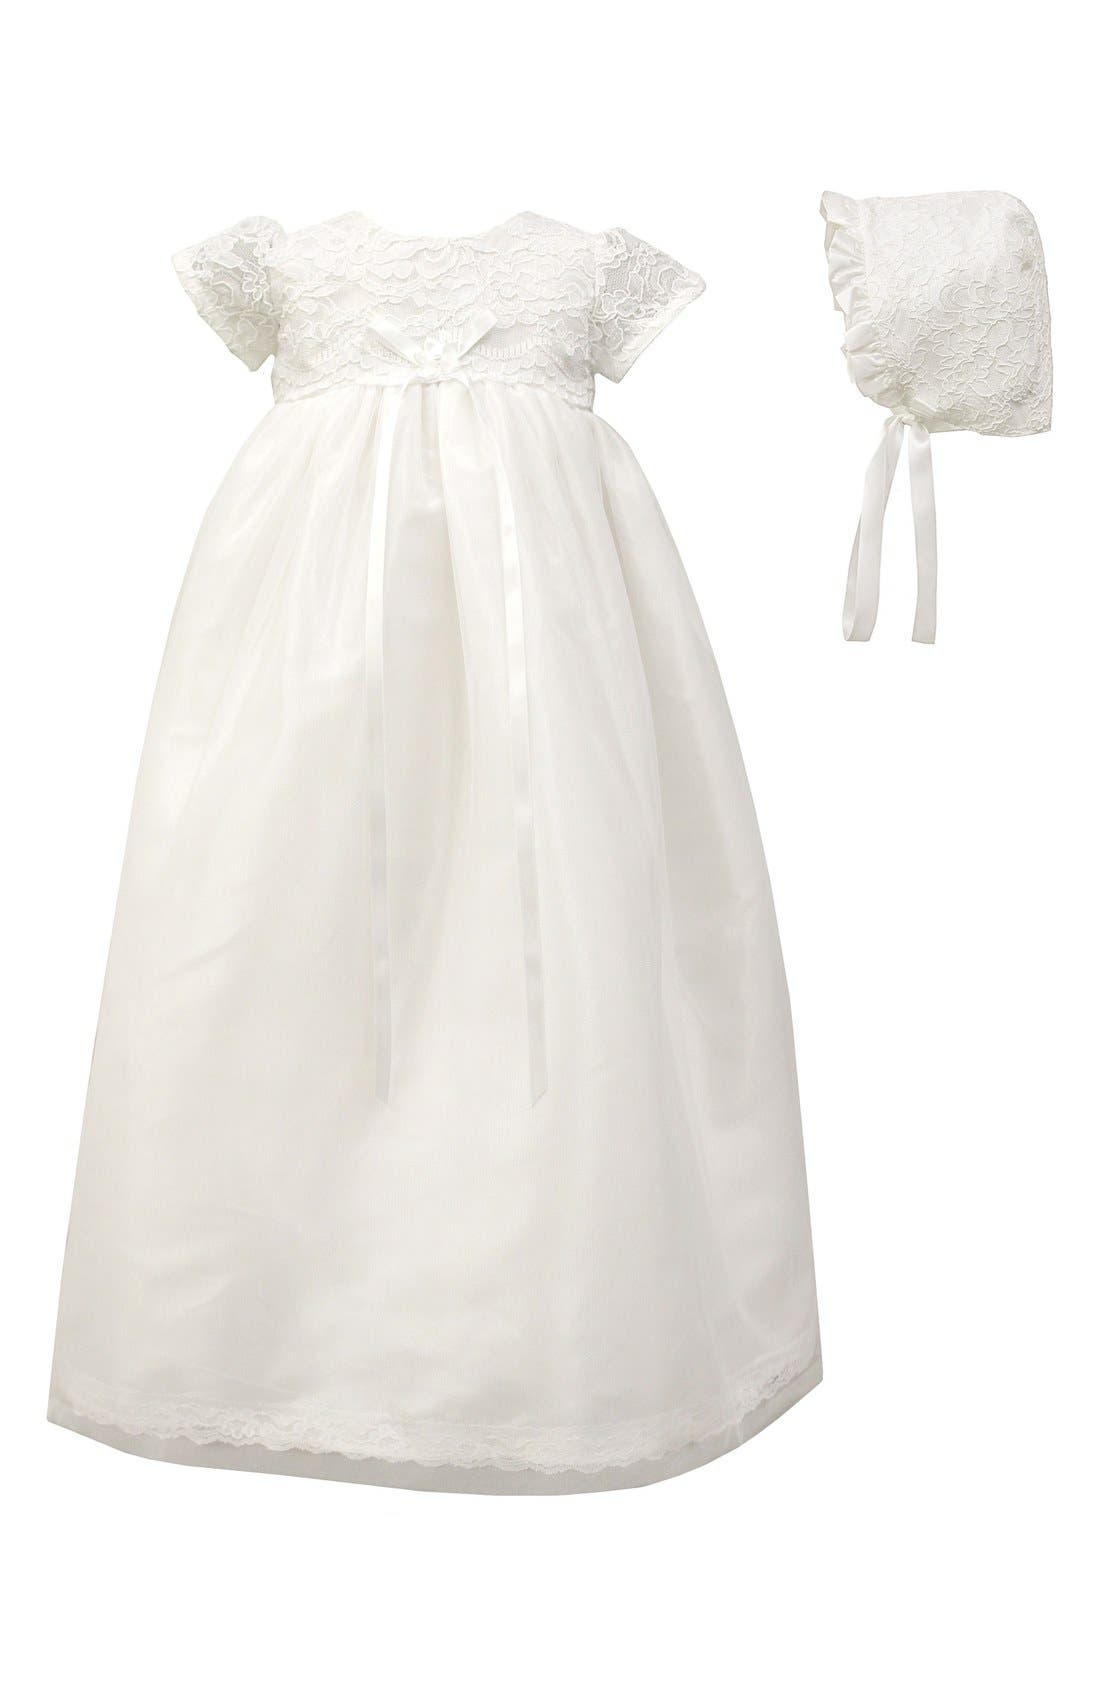 Scalloped Lace Christening Gown & Bonnet Set,                             Main thumbnail 1, color,                             100